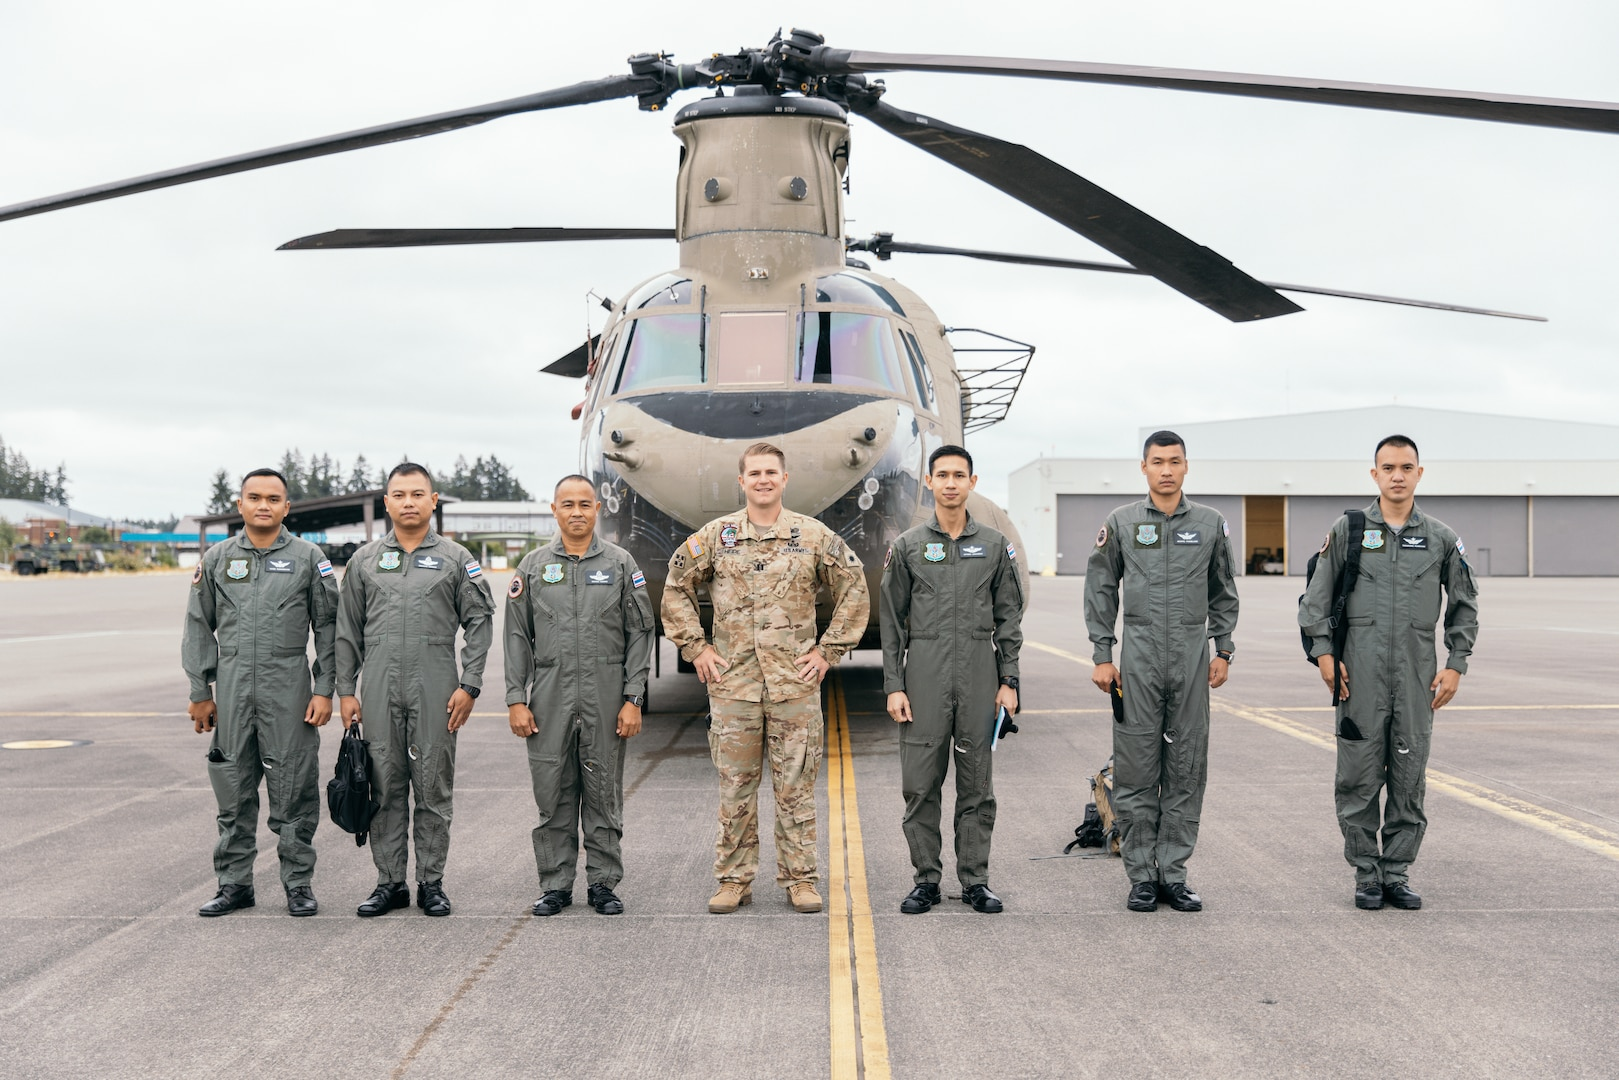 Members of the 9th Aviation Battalion from the Royal Thai Army Aviation Center traveled to Joint Base Lewis-McChord, Wash., on July 20, 2021.